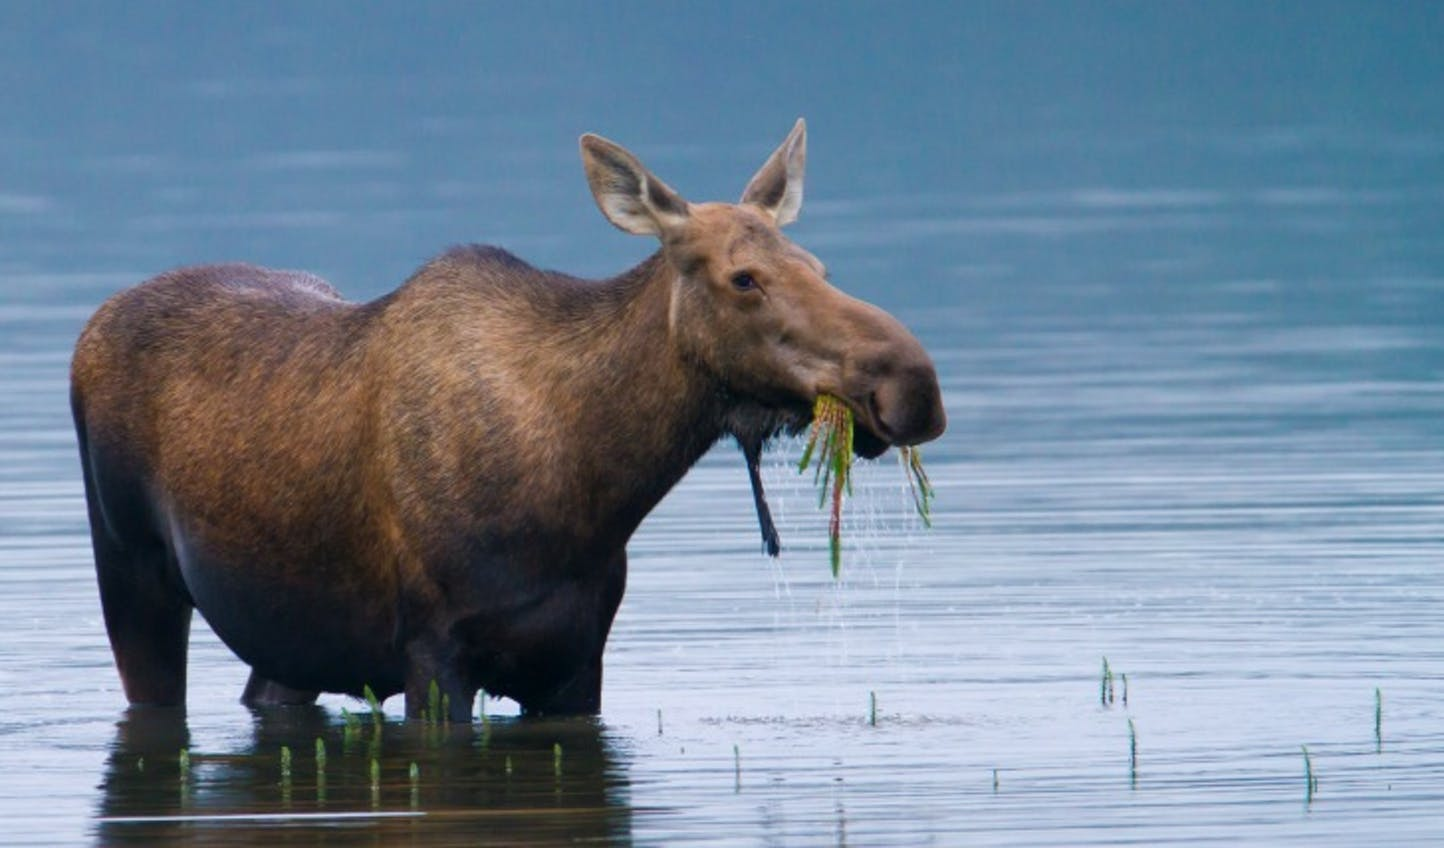 Get up close and personal with Alaska's famed wildlife